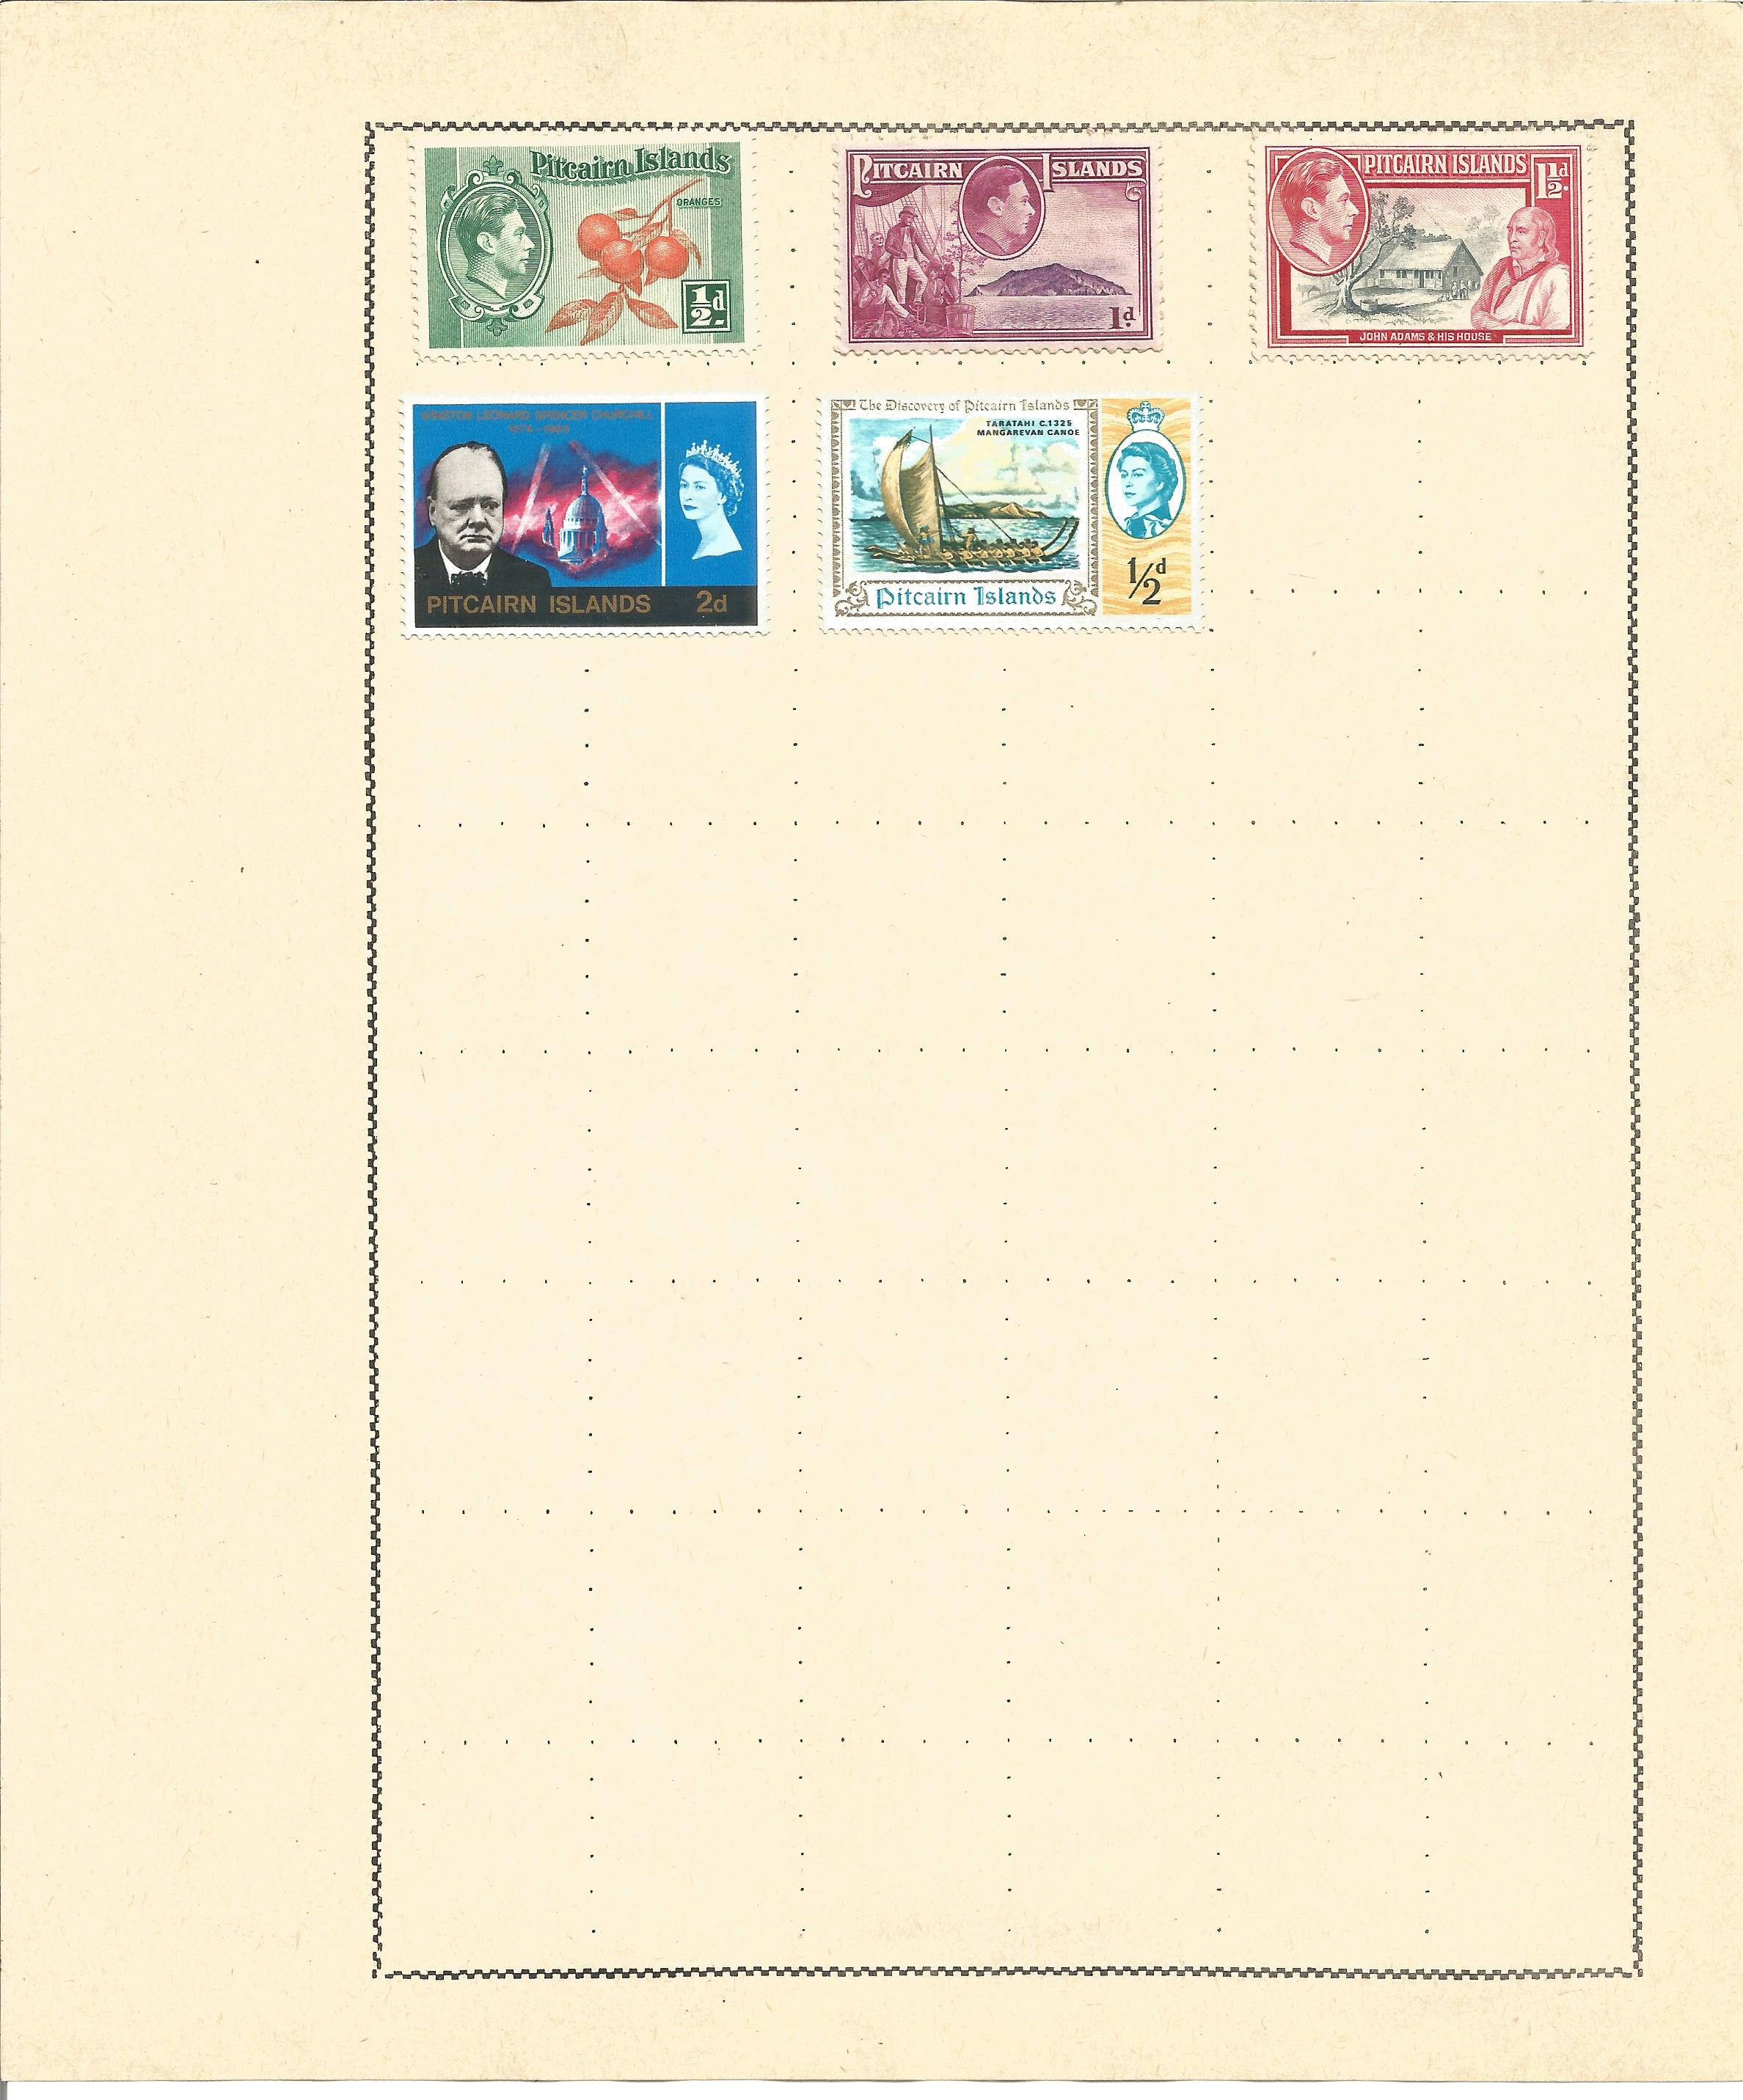 British Commonwealth stamp collection 7 loose album leaves countries include North Borneo, - Image 2 of 3